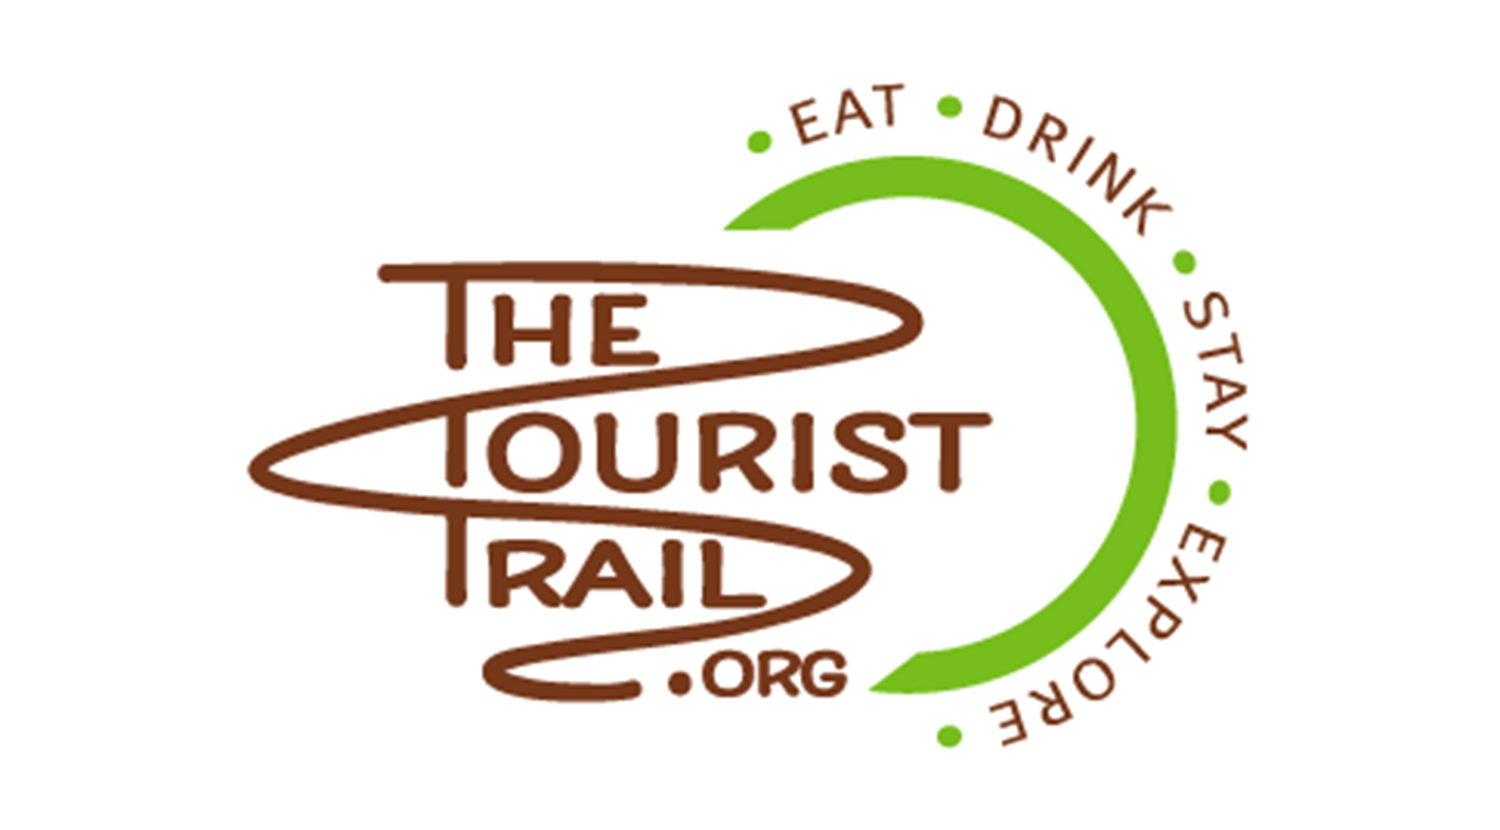 View from The Tourist Trail - logo